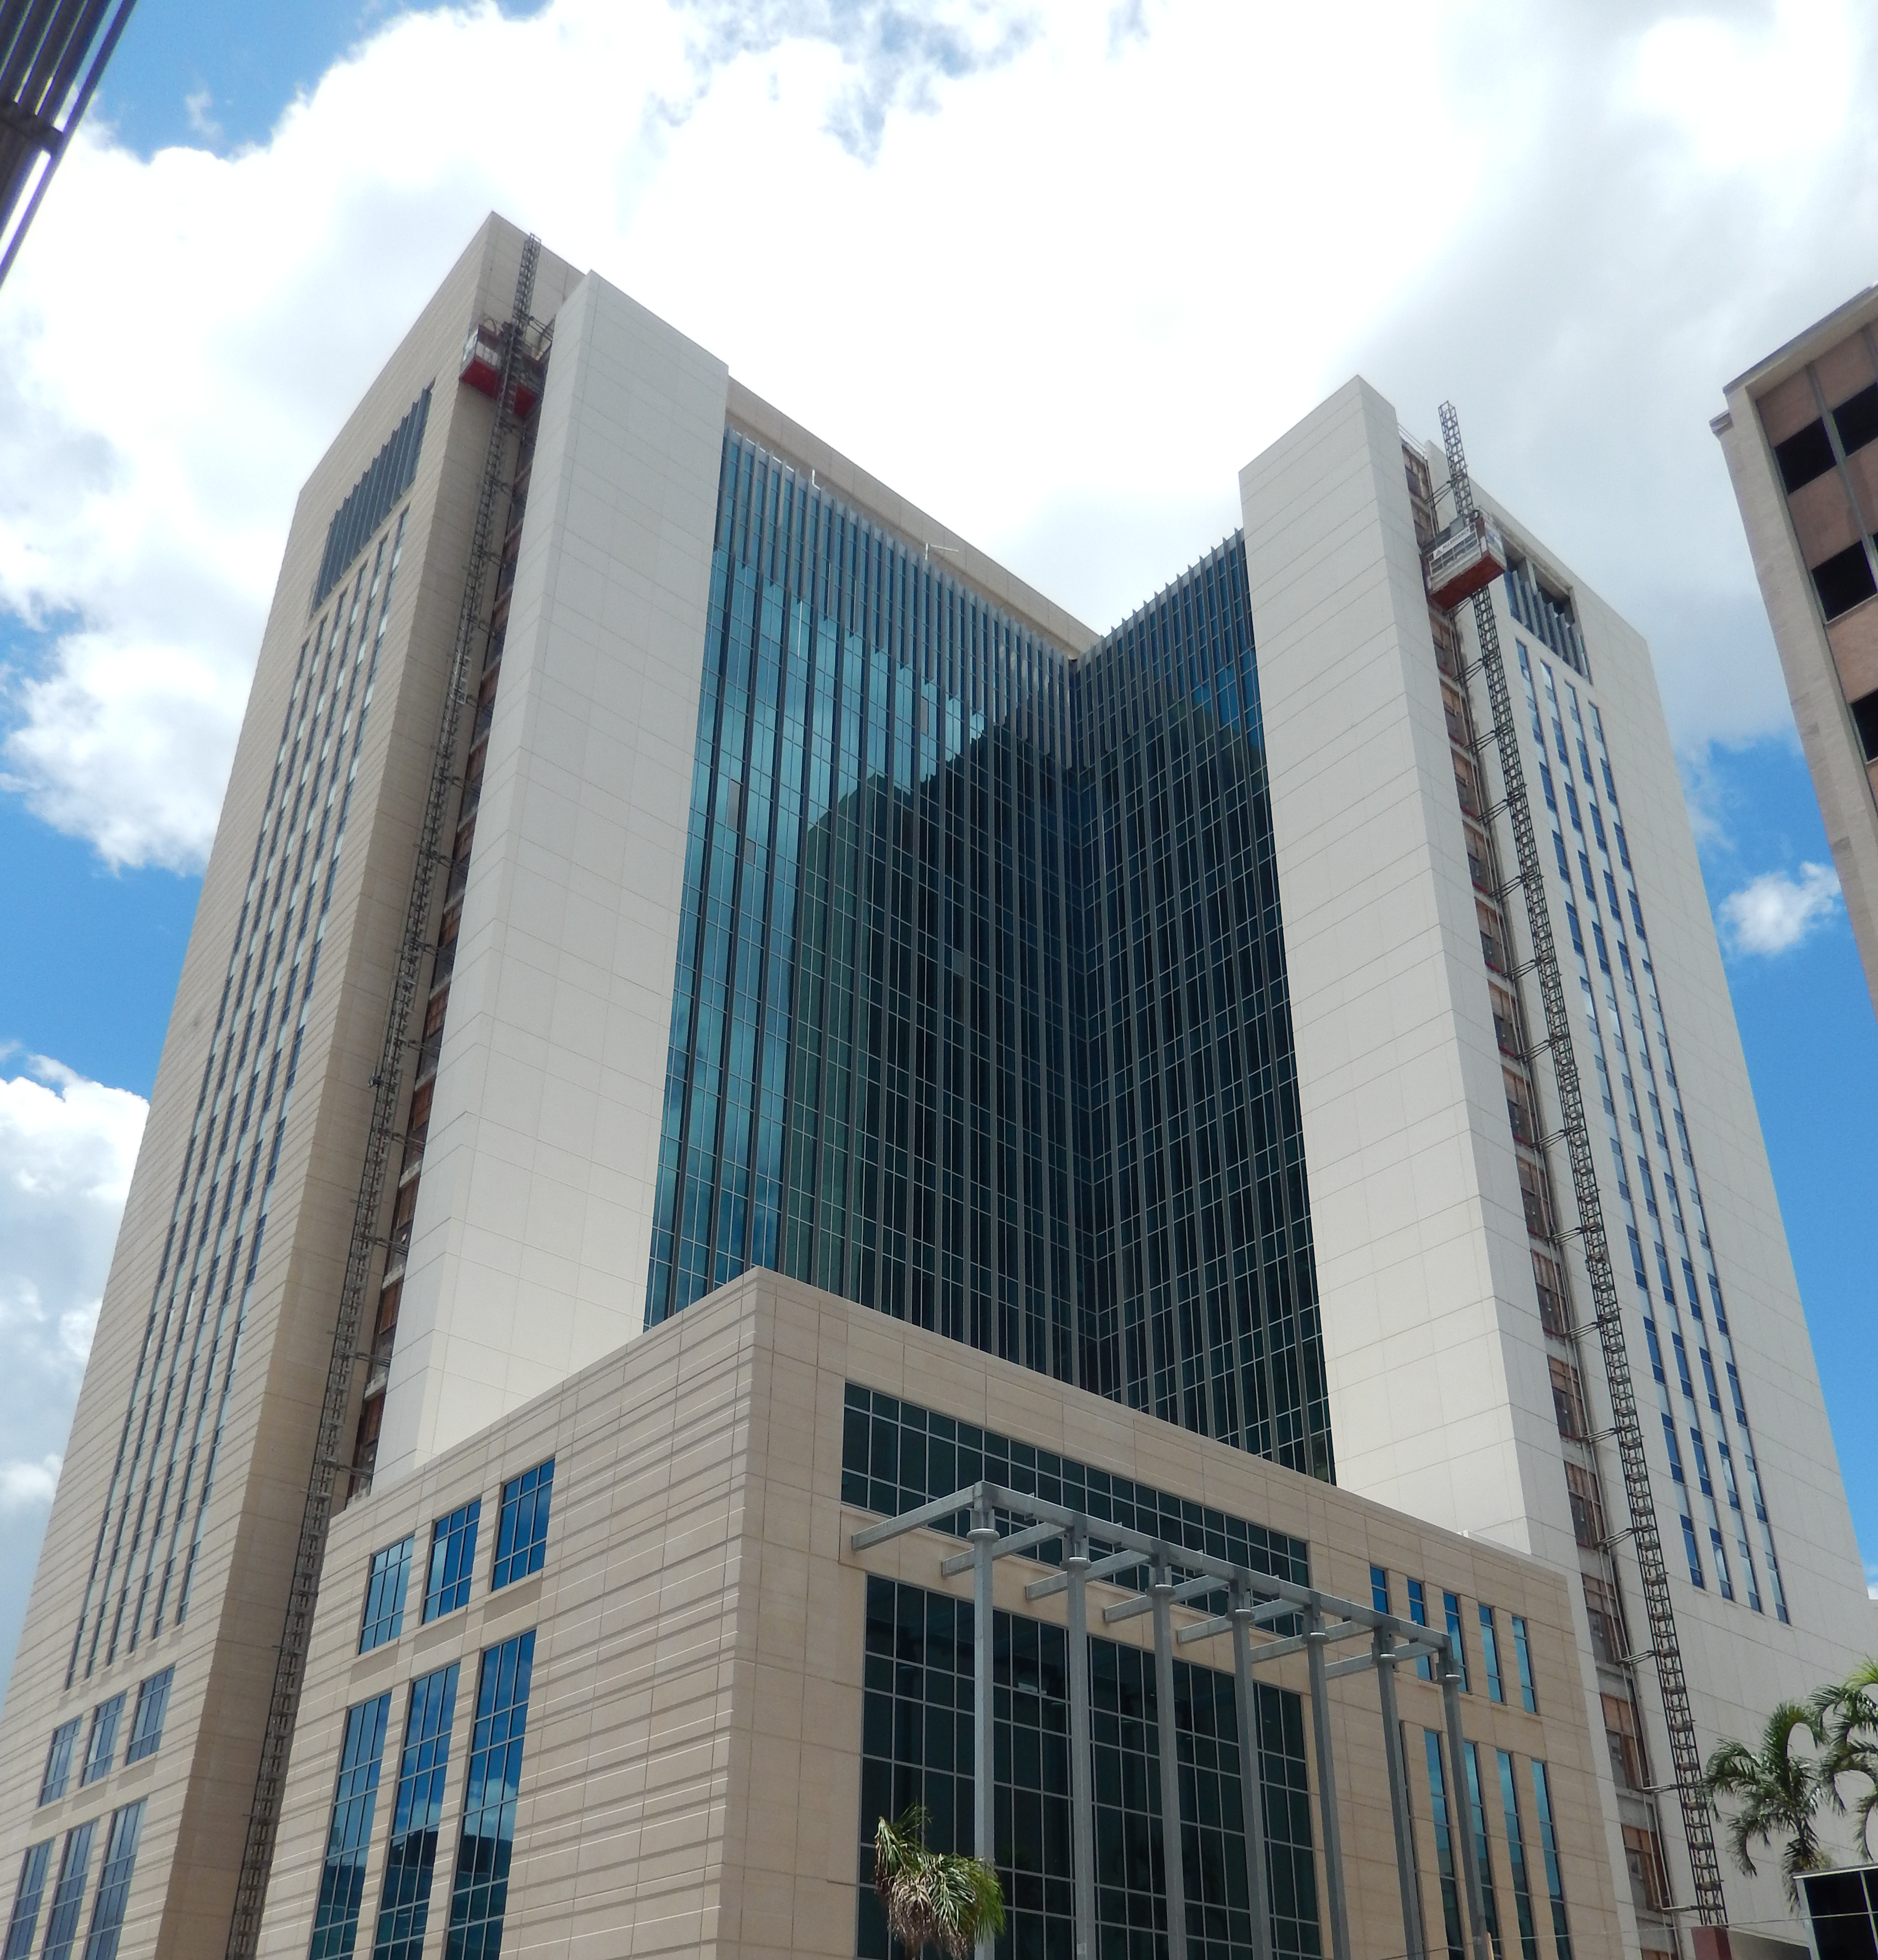 Project name: New Broward County Courthouse